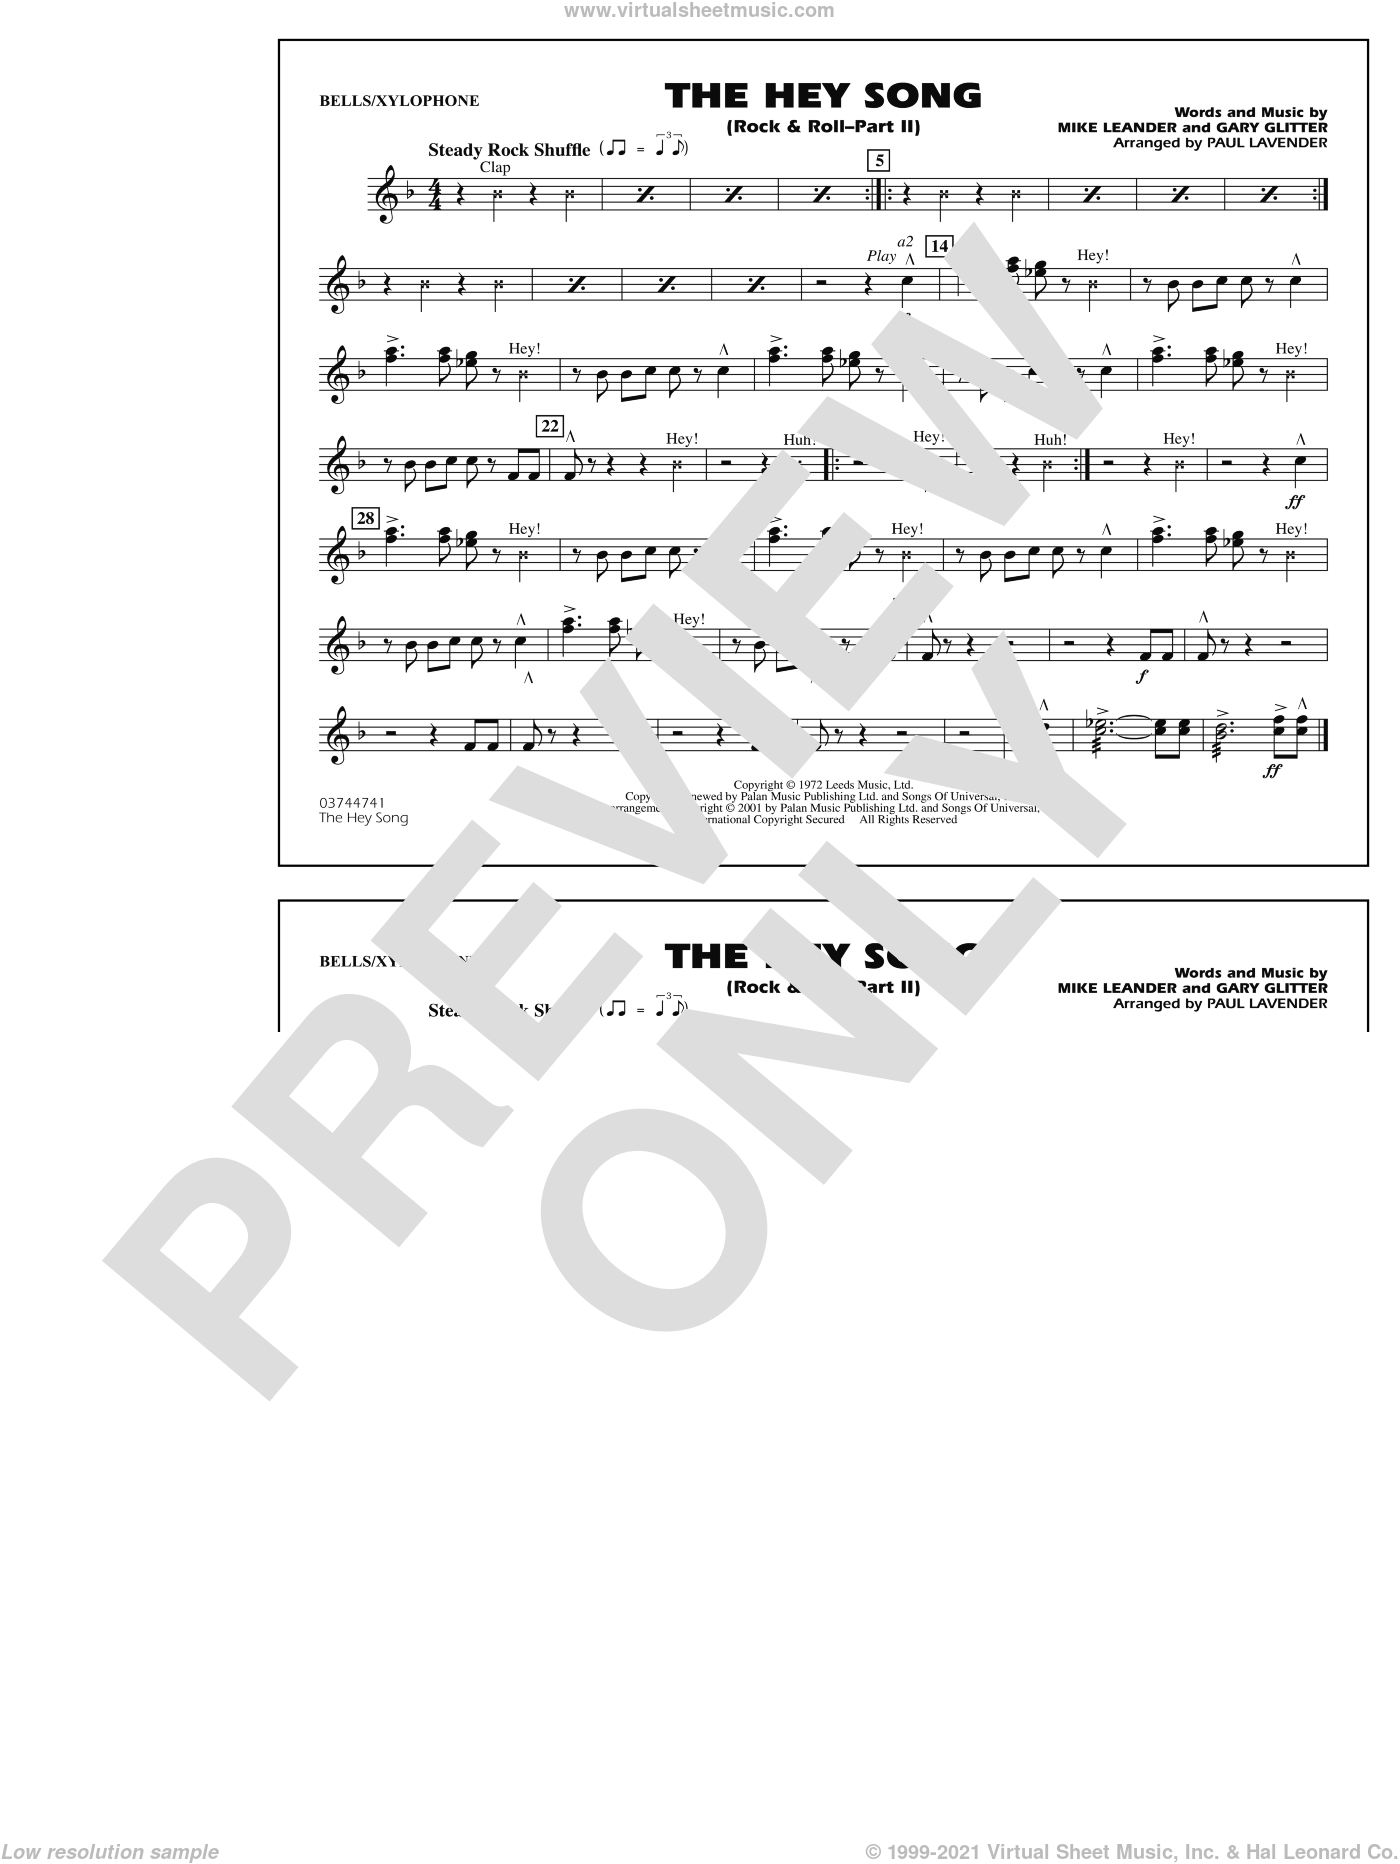 Rock and Roll, part ii (the hey song) sheet music for marching band (bells/xylophone) by Mike Leander